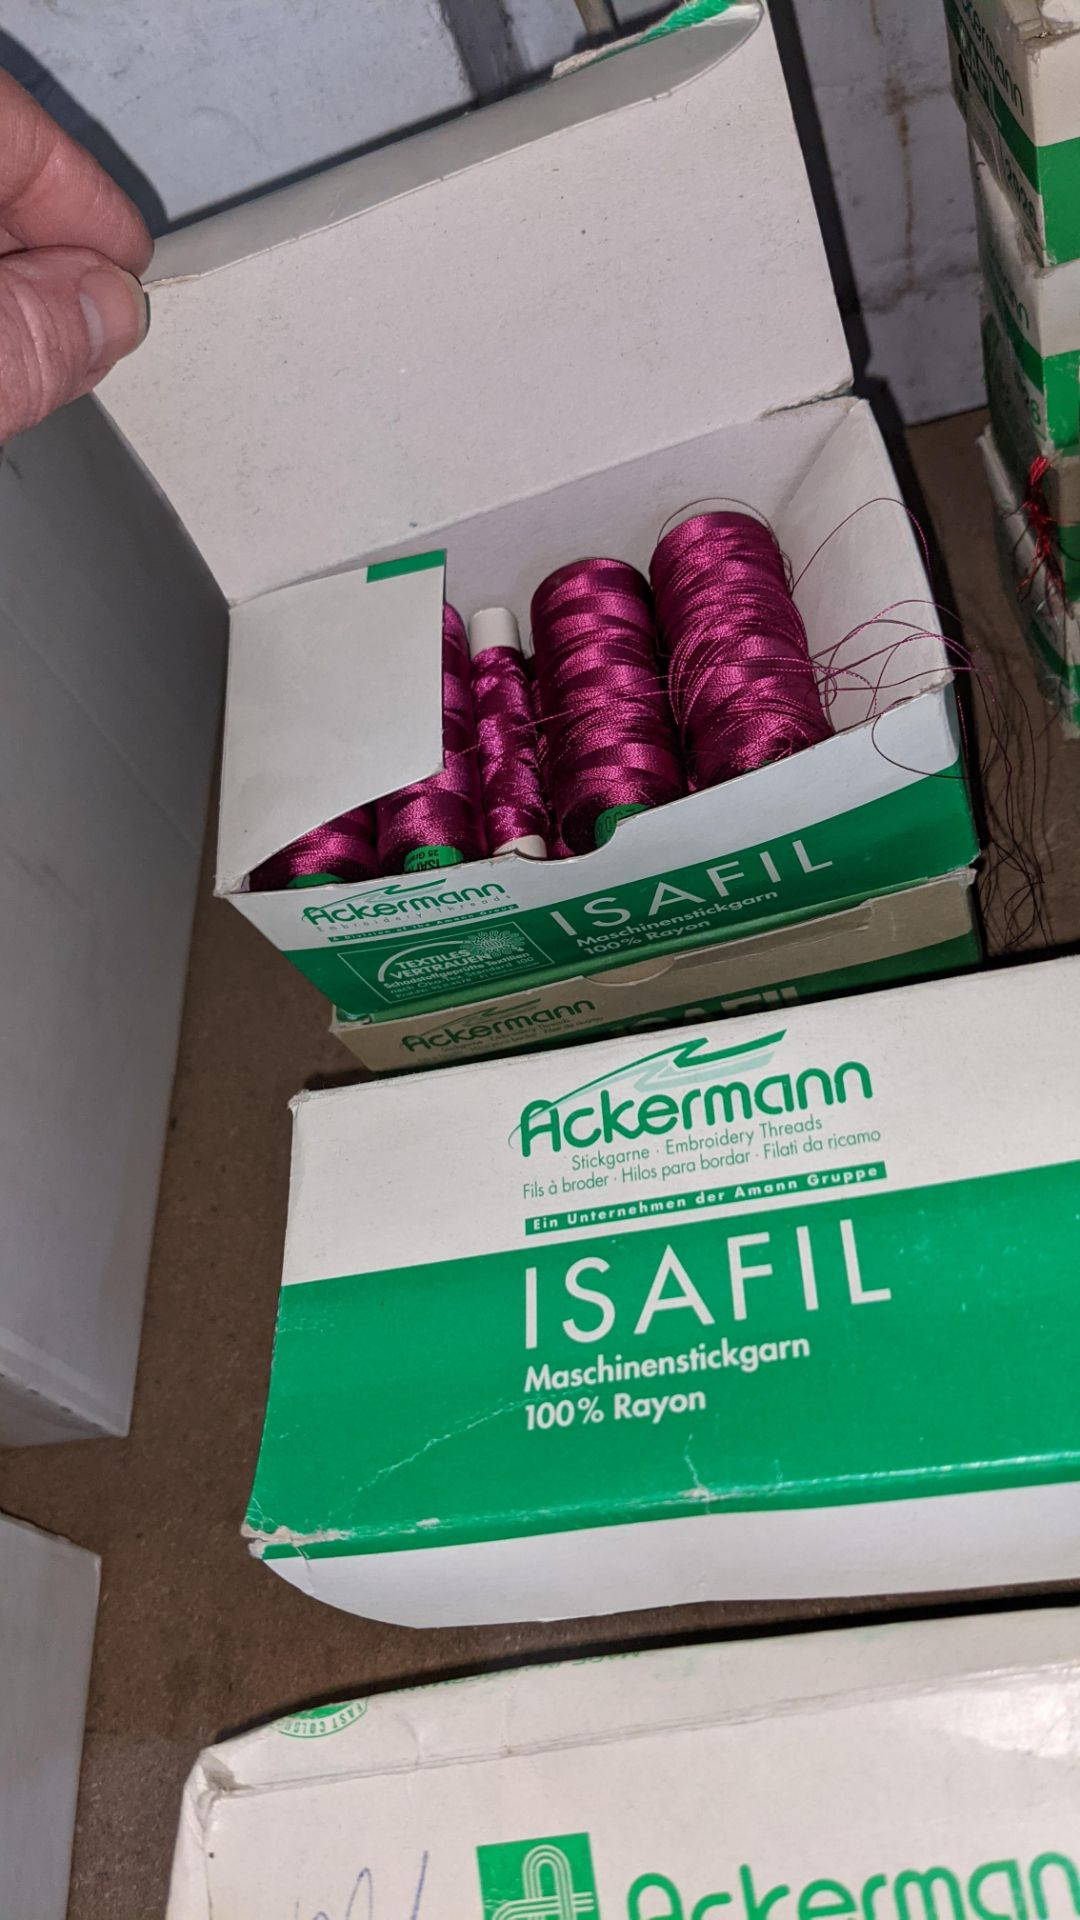 15 boxes of Ackermann Isafil viscose/rayon embroidery thread - Image 7 of 8